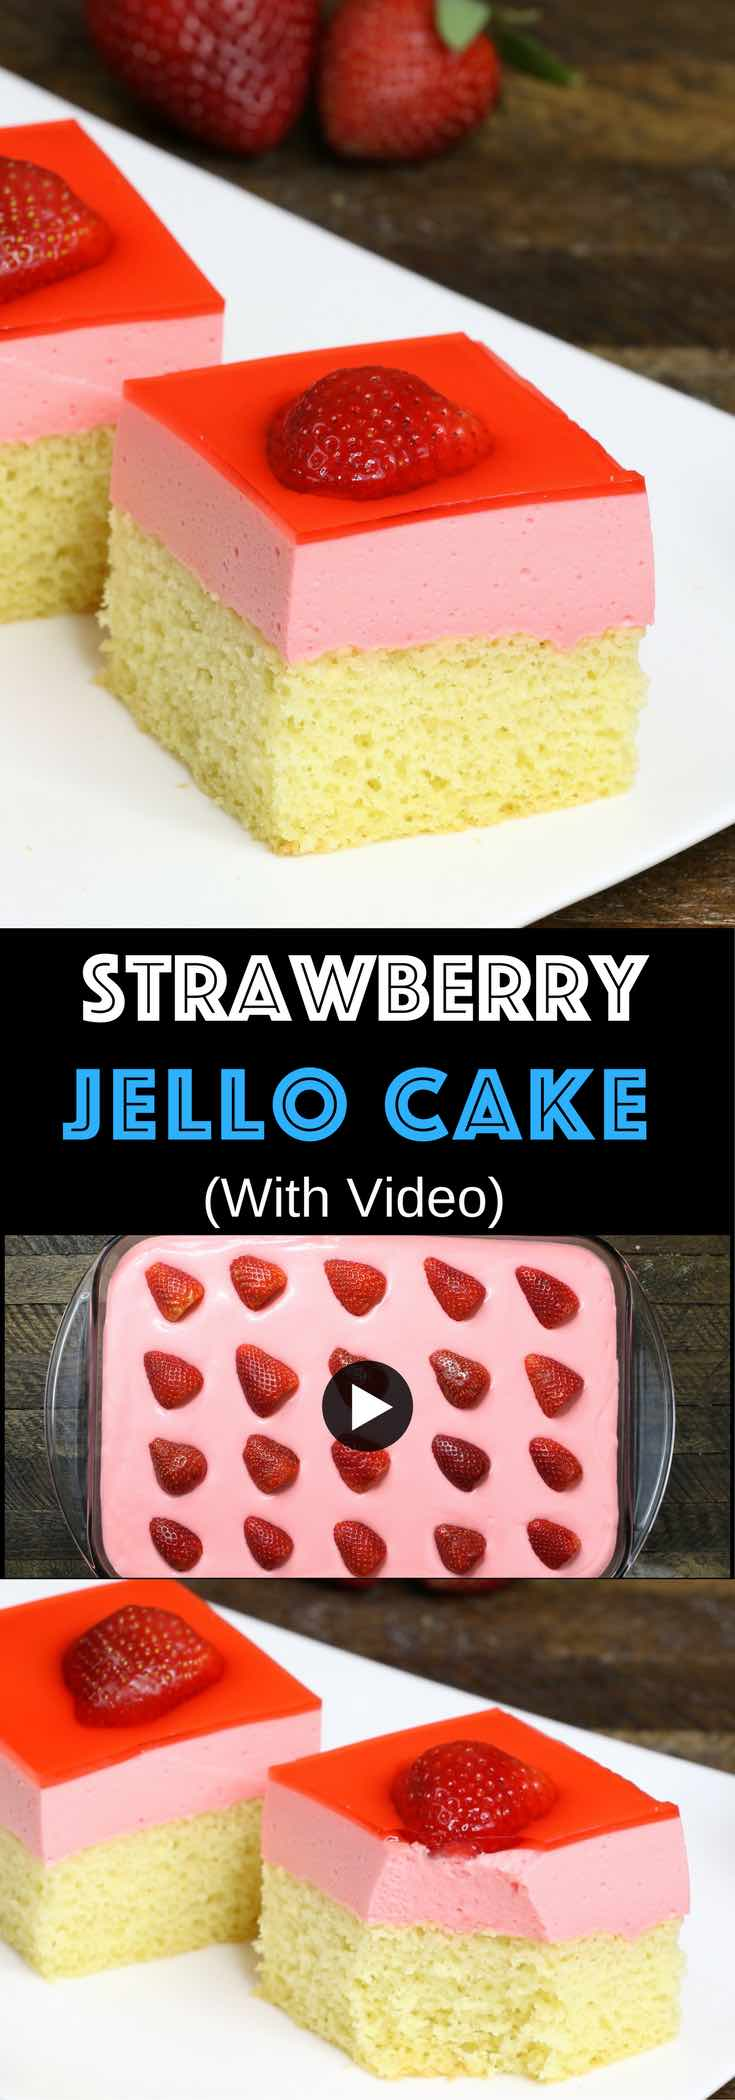 Easy Strawberry Jello Cake – A beautiful dessert with 3 layers for a special party! Smooth and creamy Jello fillings between yellow cake and bright red strawberry layers. So Good! Great for holiday and birthday parties. Easy recipe, party desserts. Vegetarian. Video recipe. | Tipbuzz.com